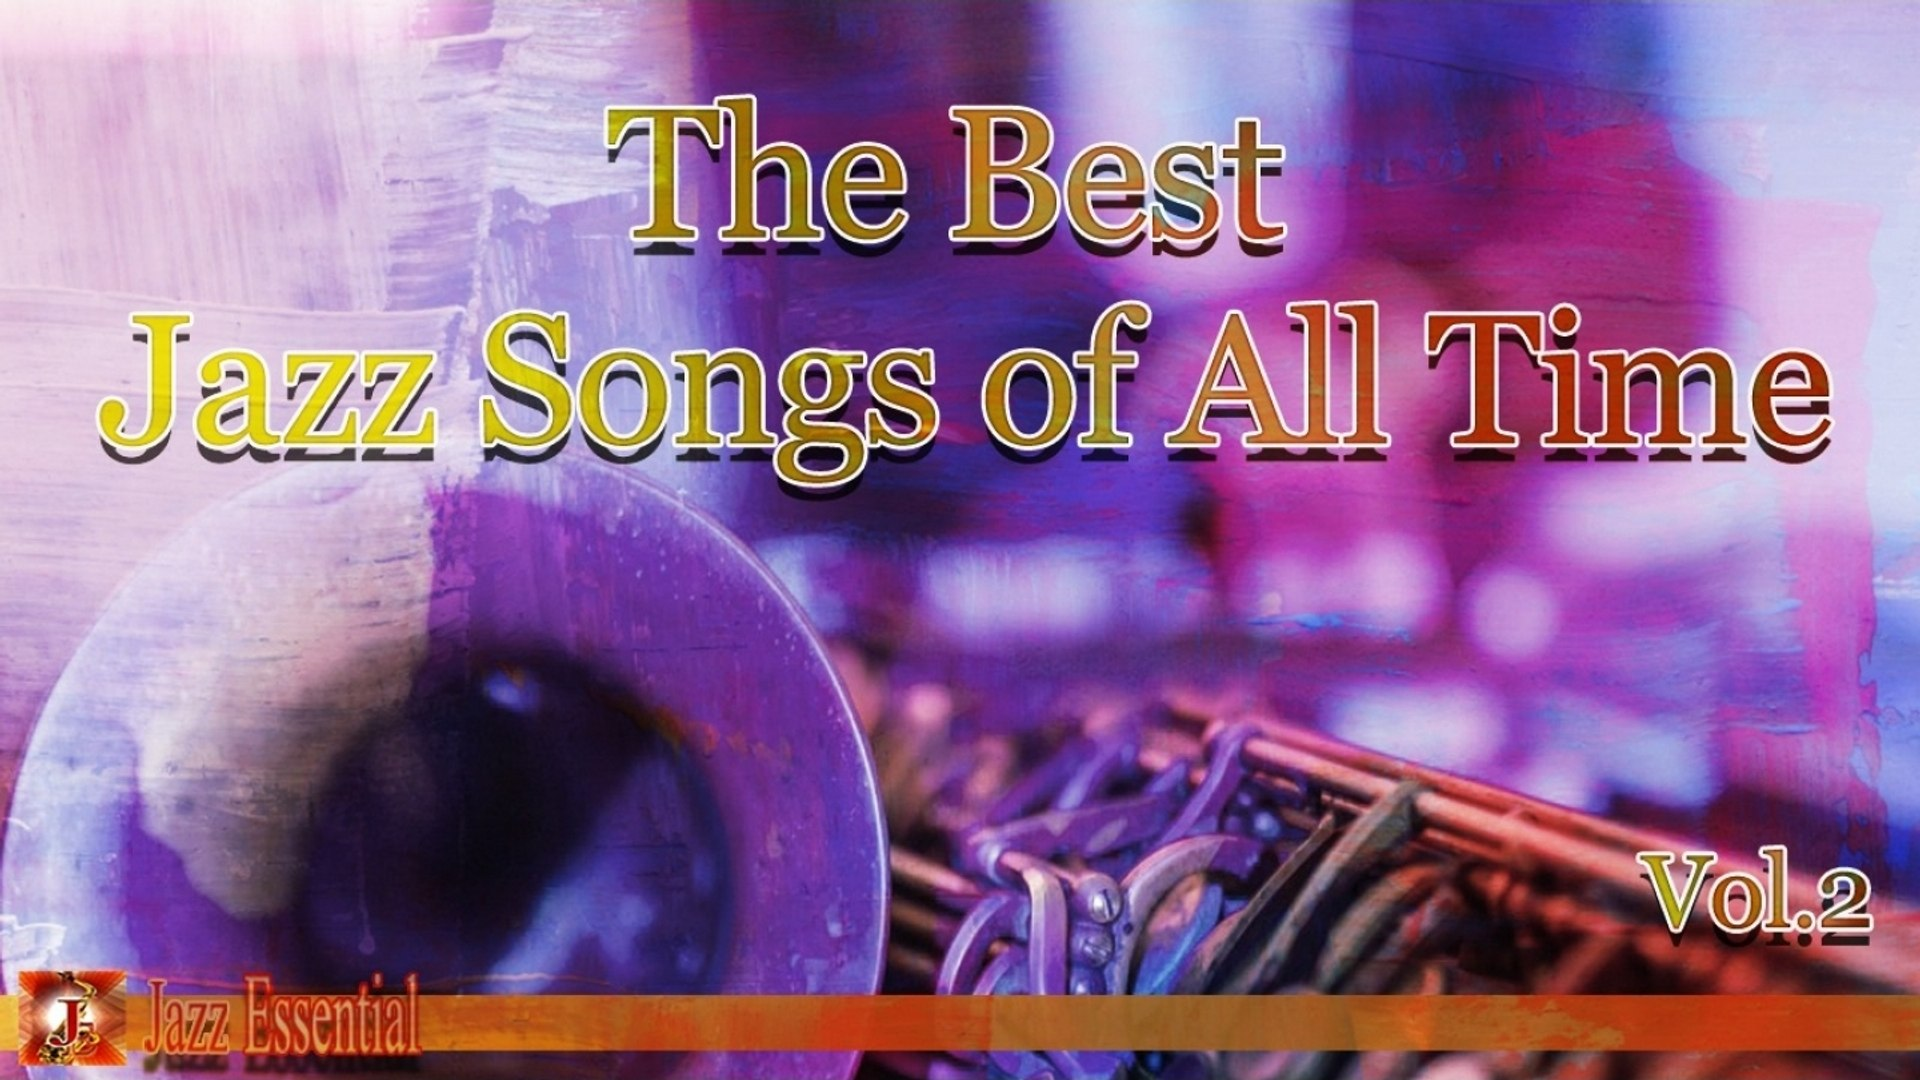 Roy Eldridge, Chick Webb, Benny Goodman, Louis Armstrong - The Best Jazz Songs of All Time - Vol. 2